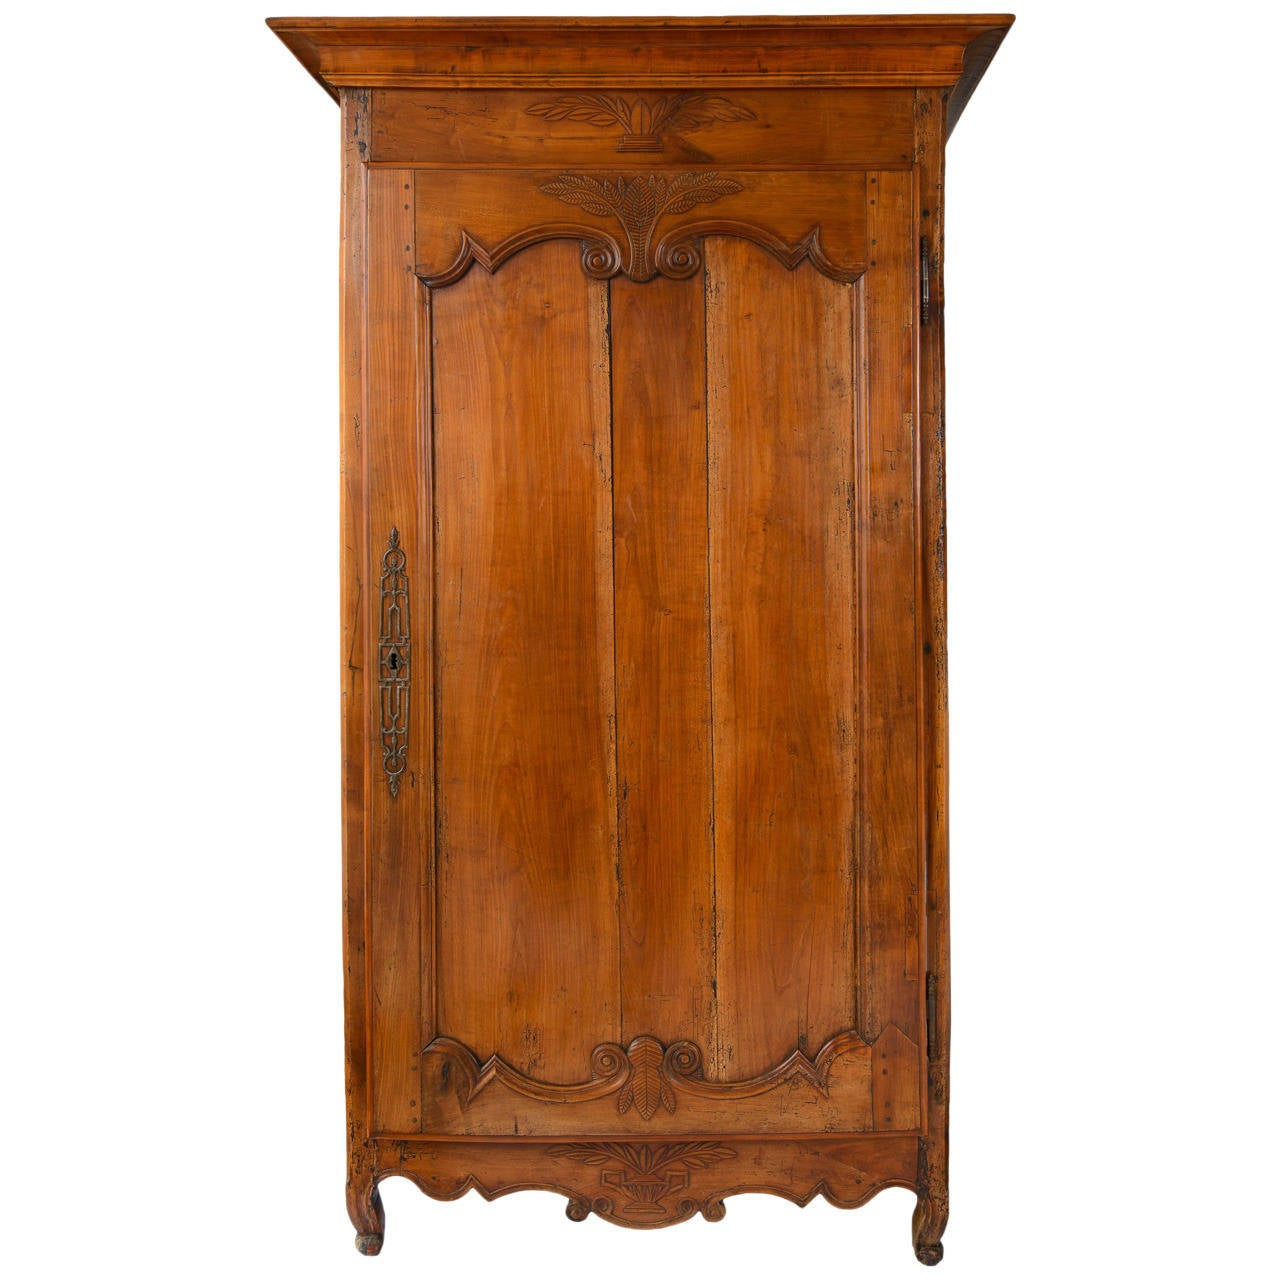 18th century french louis xv bonnetiere armoire for sale at 1stdibs. Black Bedroom Furniture Sets. Home Design Ideas